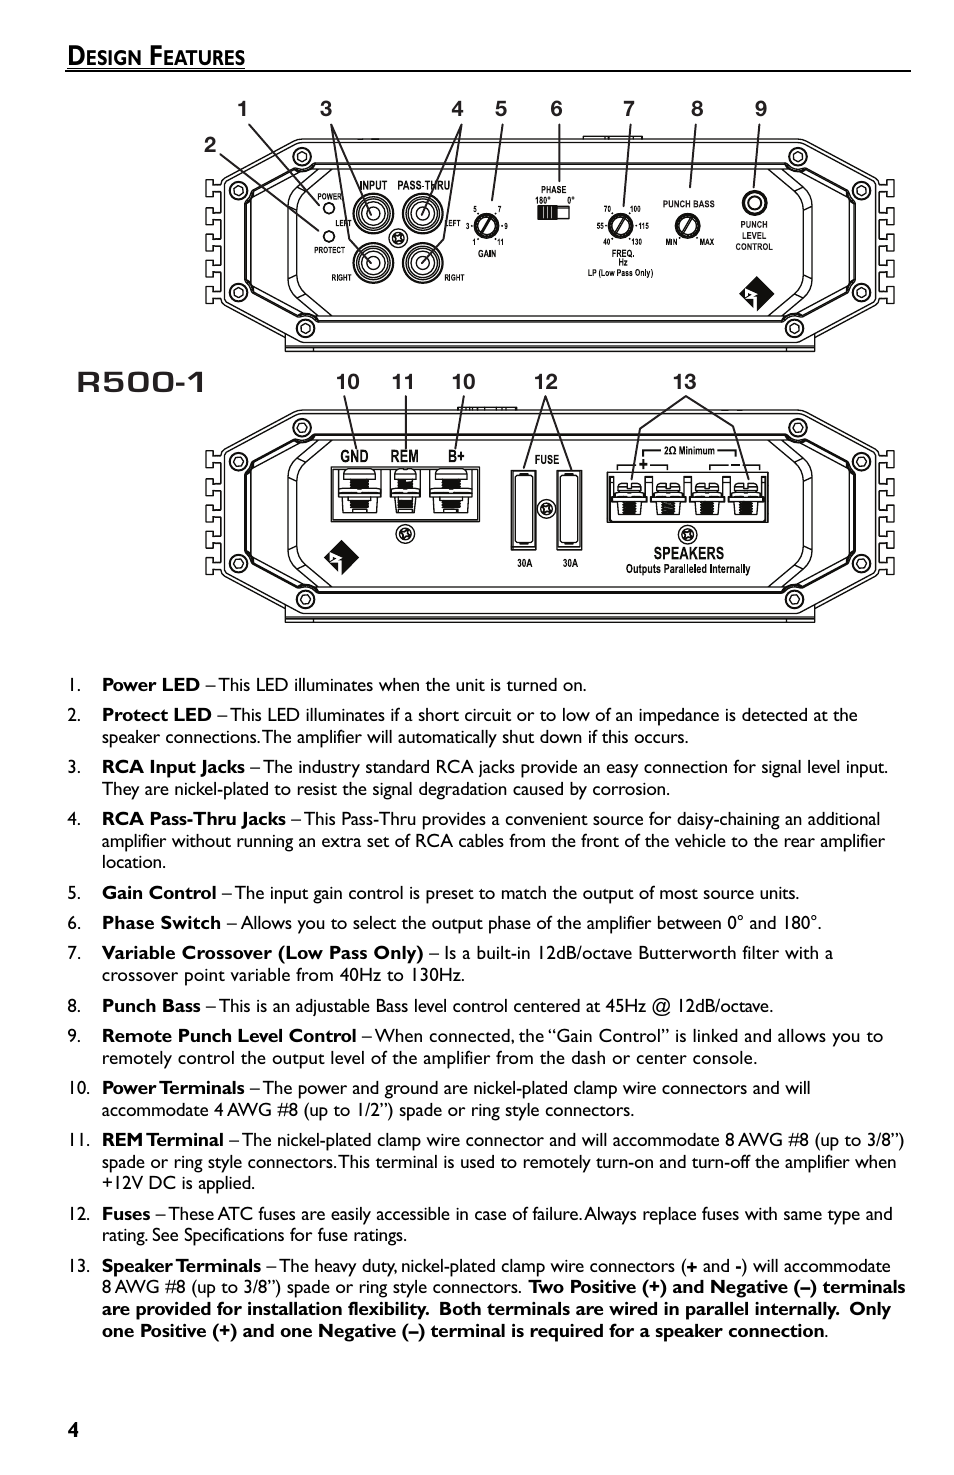 Exelent 10 Wire Amp Rating Pictures - Simple Wiring Diagram ...